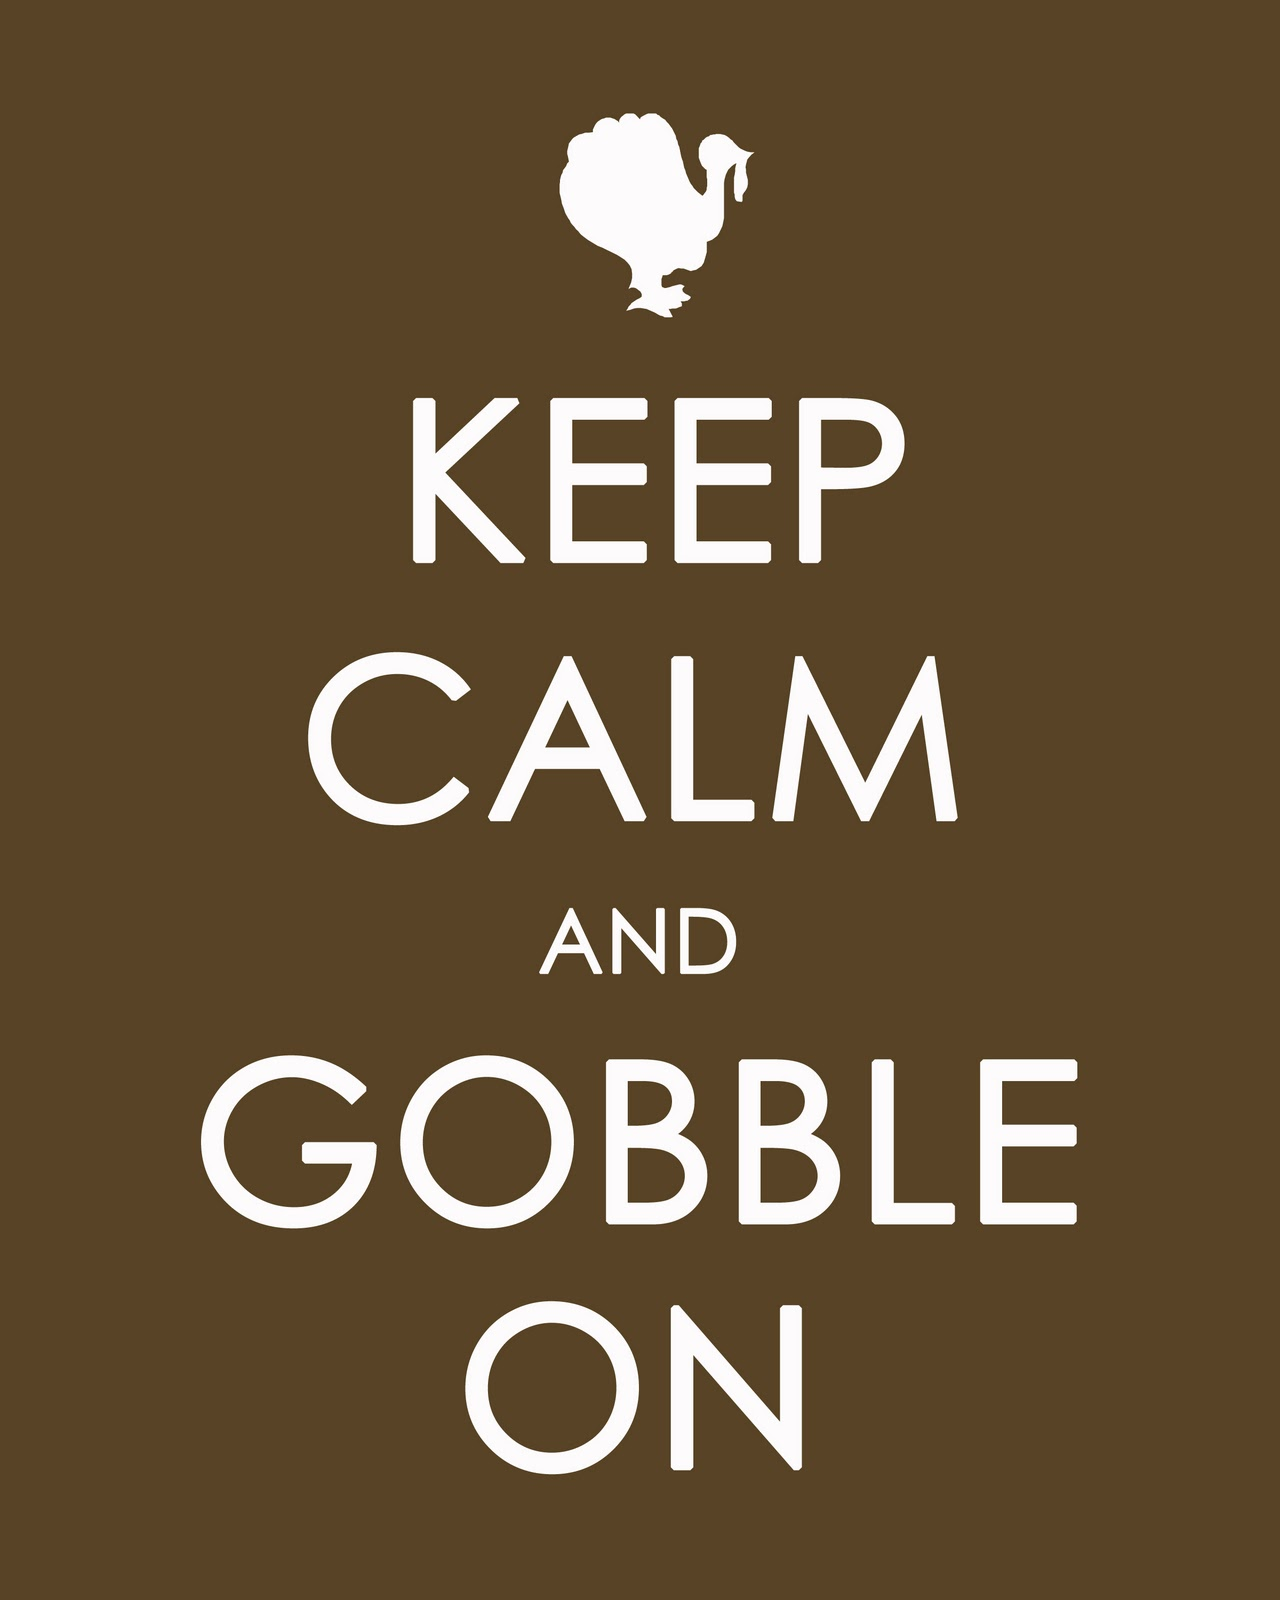 Pete And Stephanie  Keep Calm And Gobble On